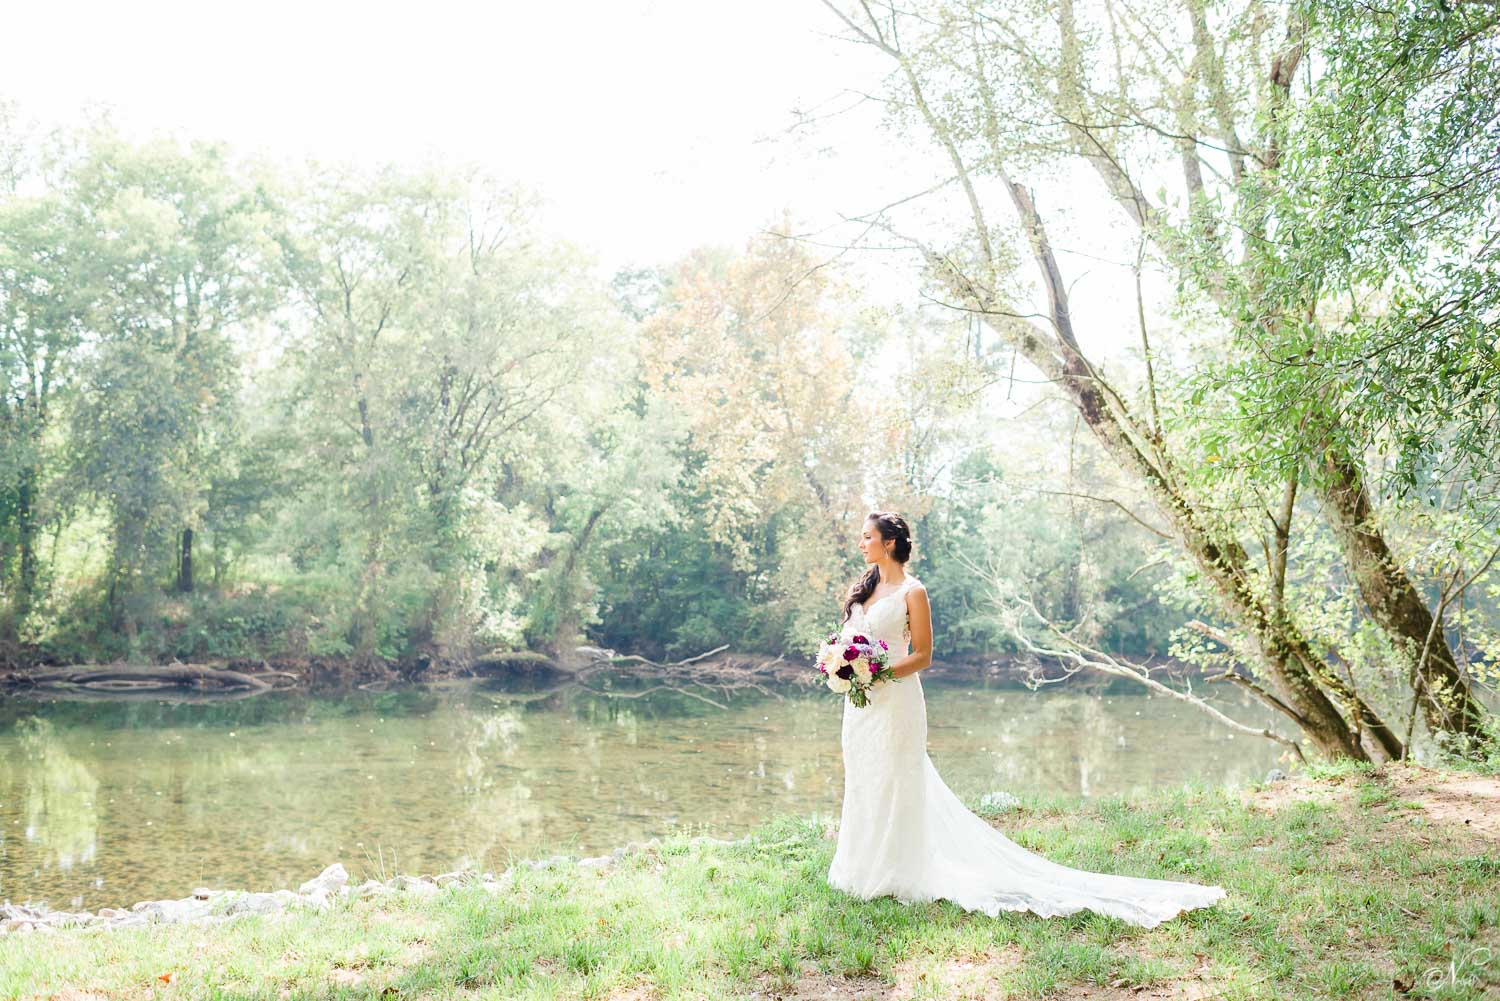 bride standing on the edge of the river in front of Hiwassee River weddings venue